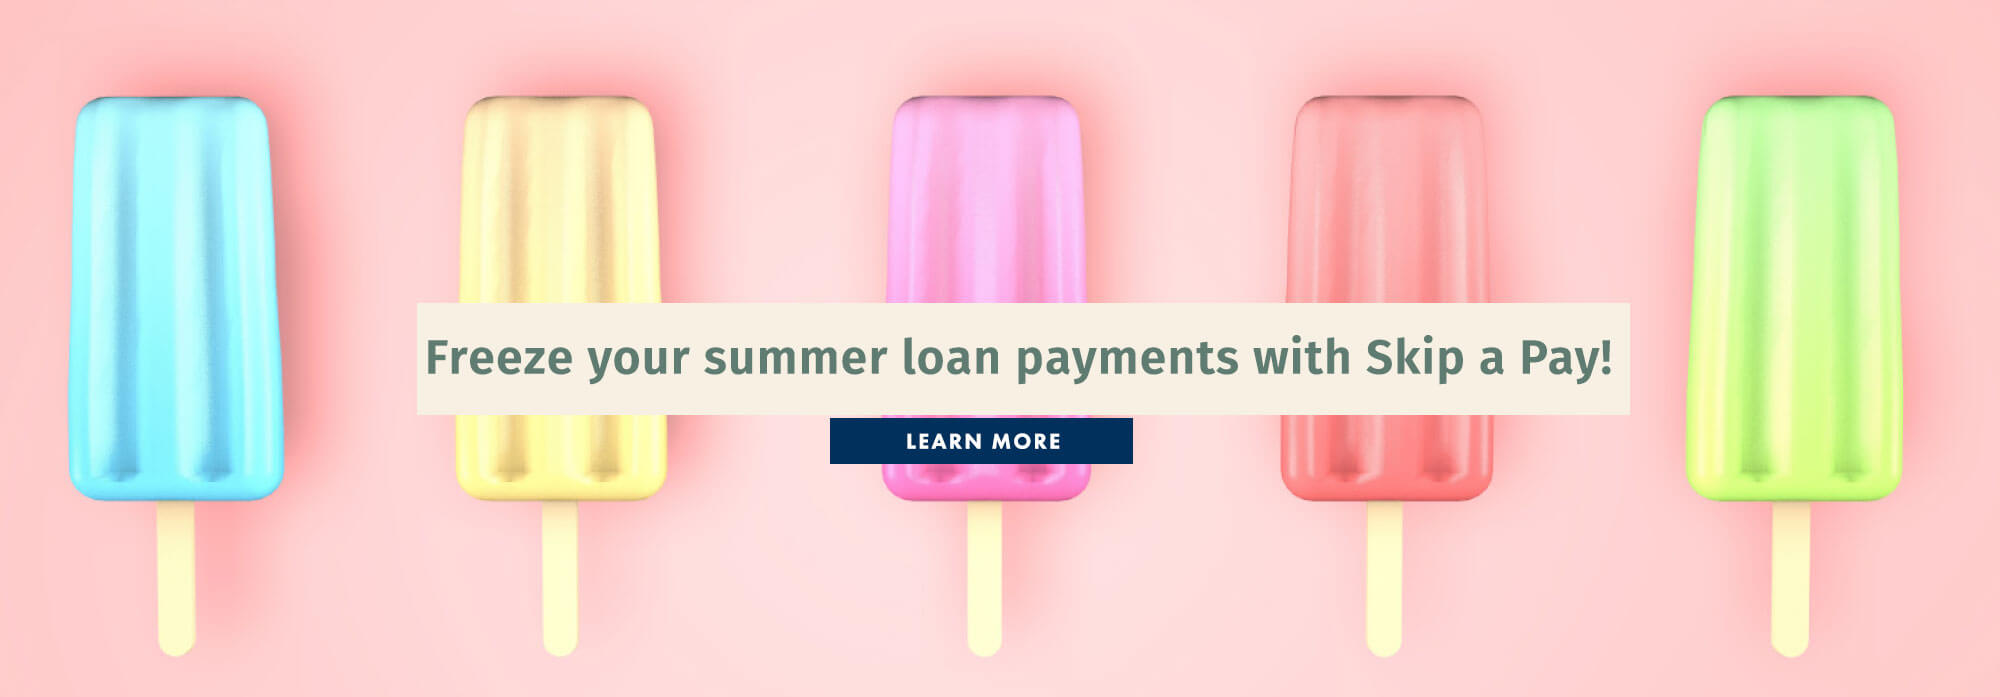 Freeze your summer loan payments with Skip a Pay!